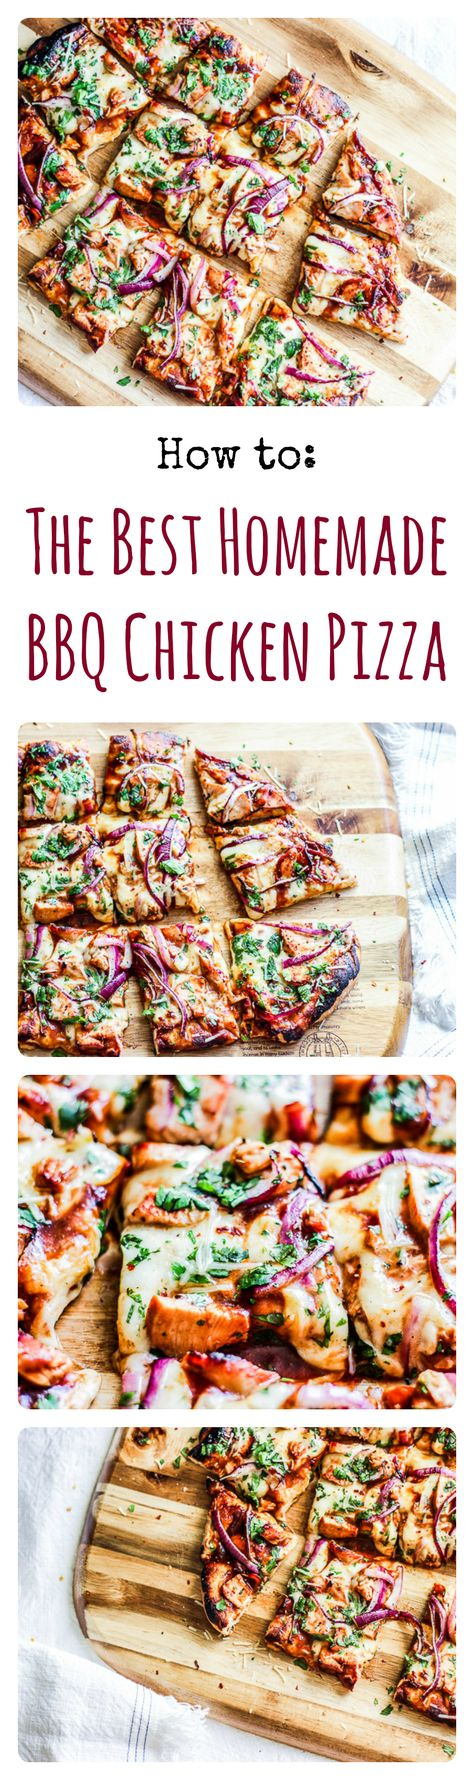 Step-by-Step Video shows how to make the TASTIEST BBQ Chicken Pizza ever! Ever!